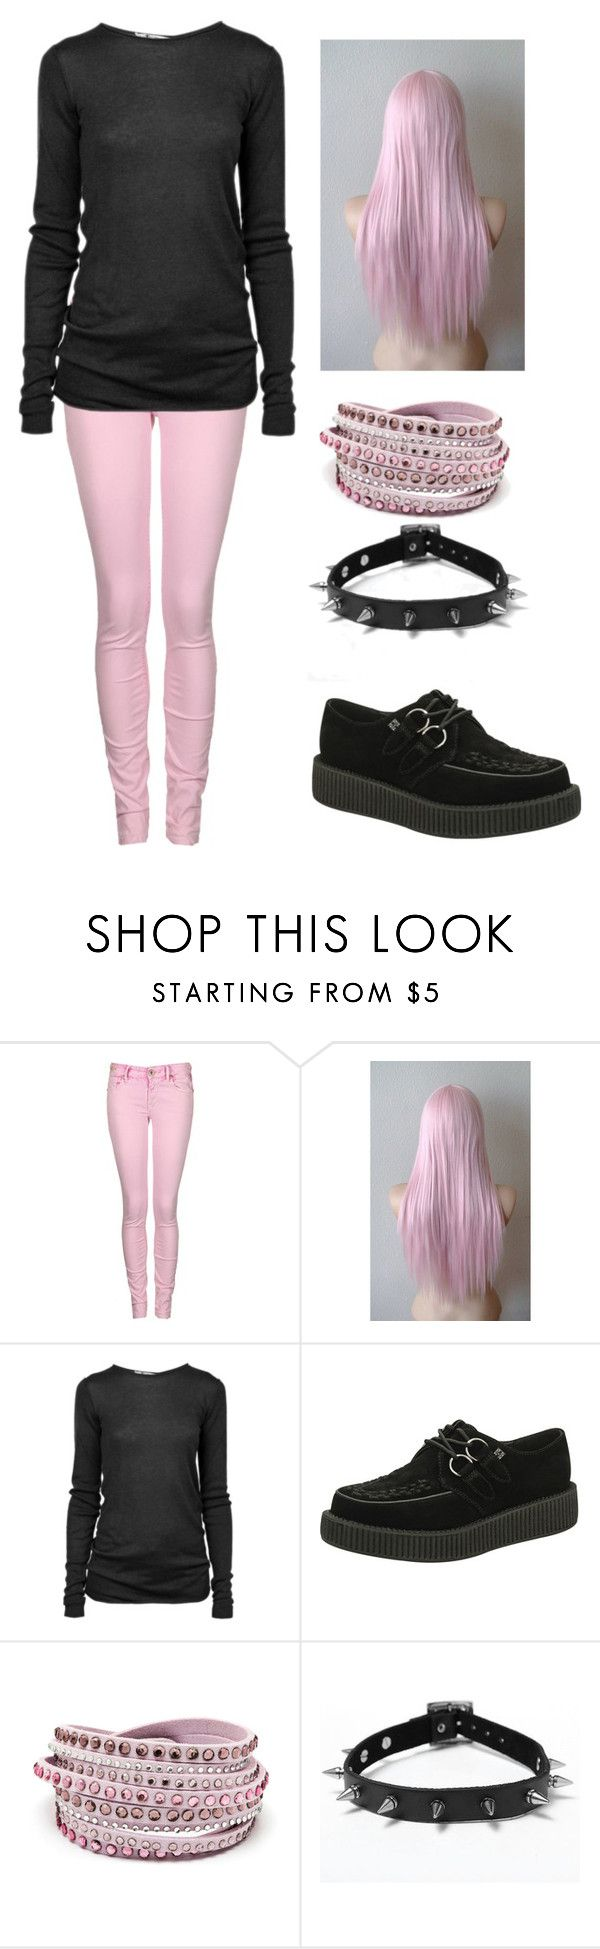 """Outfit 604 (Pastel Goth)"" by creaturefeaturerules ❤ liked on Polyvore featuring Replay, T By Alexander Wang and T.U.K."